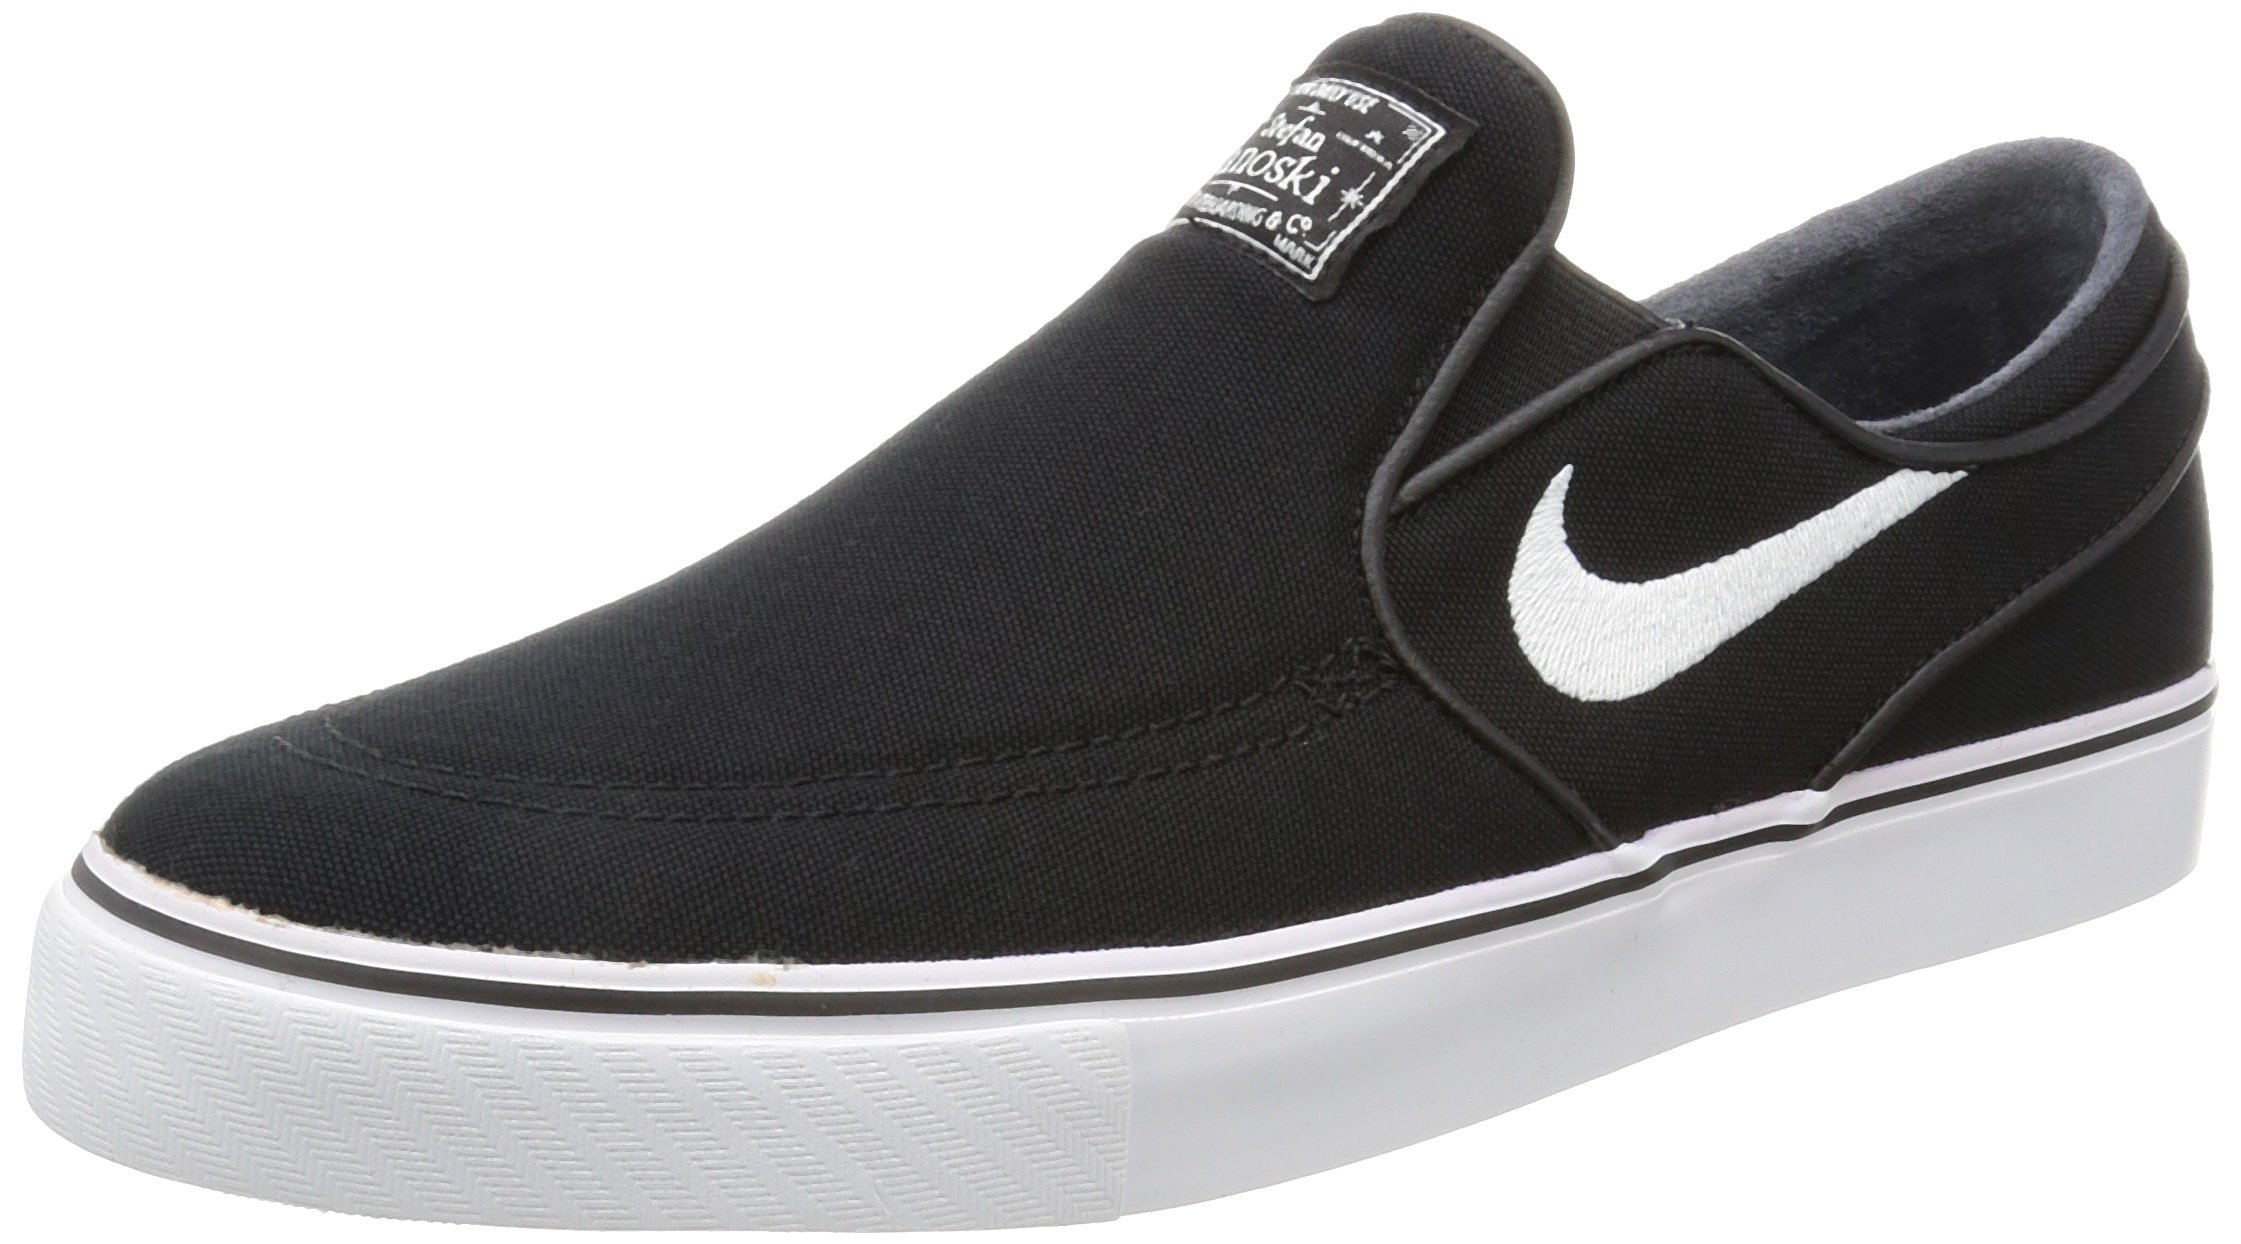 0addc4d9816b Galleon - Nike Zoom Stefan Janoski Slip Cnvs Mens Skateboarding-shoes  831749-010 9.5 - Black White-Black